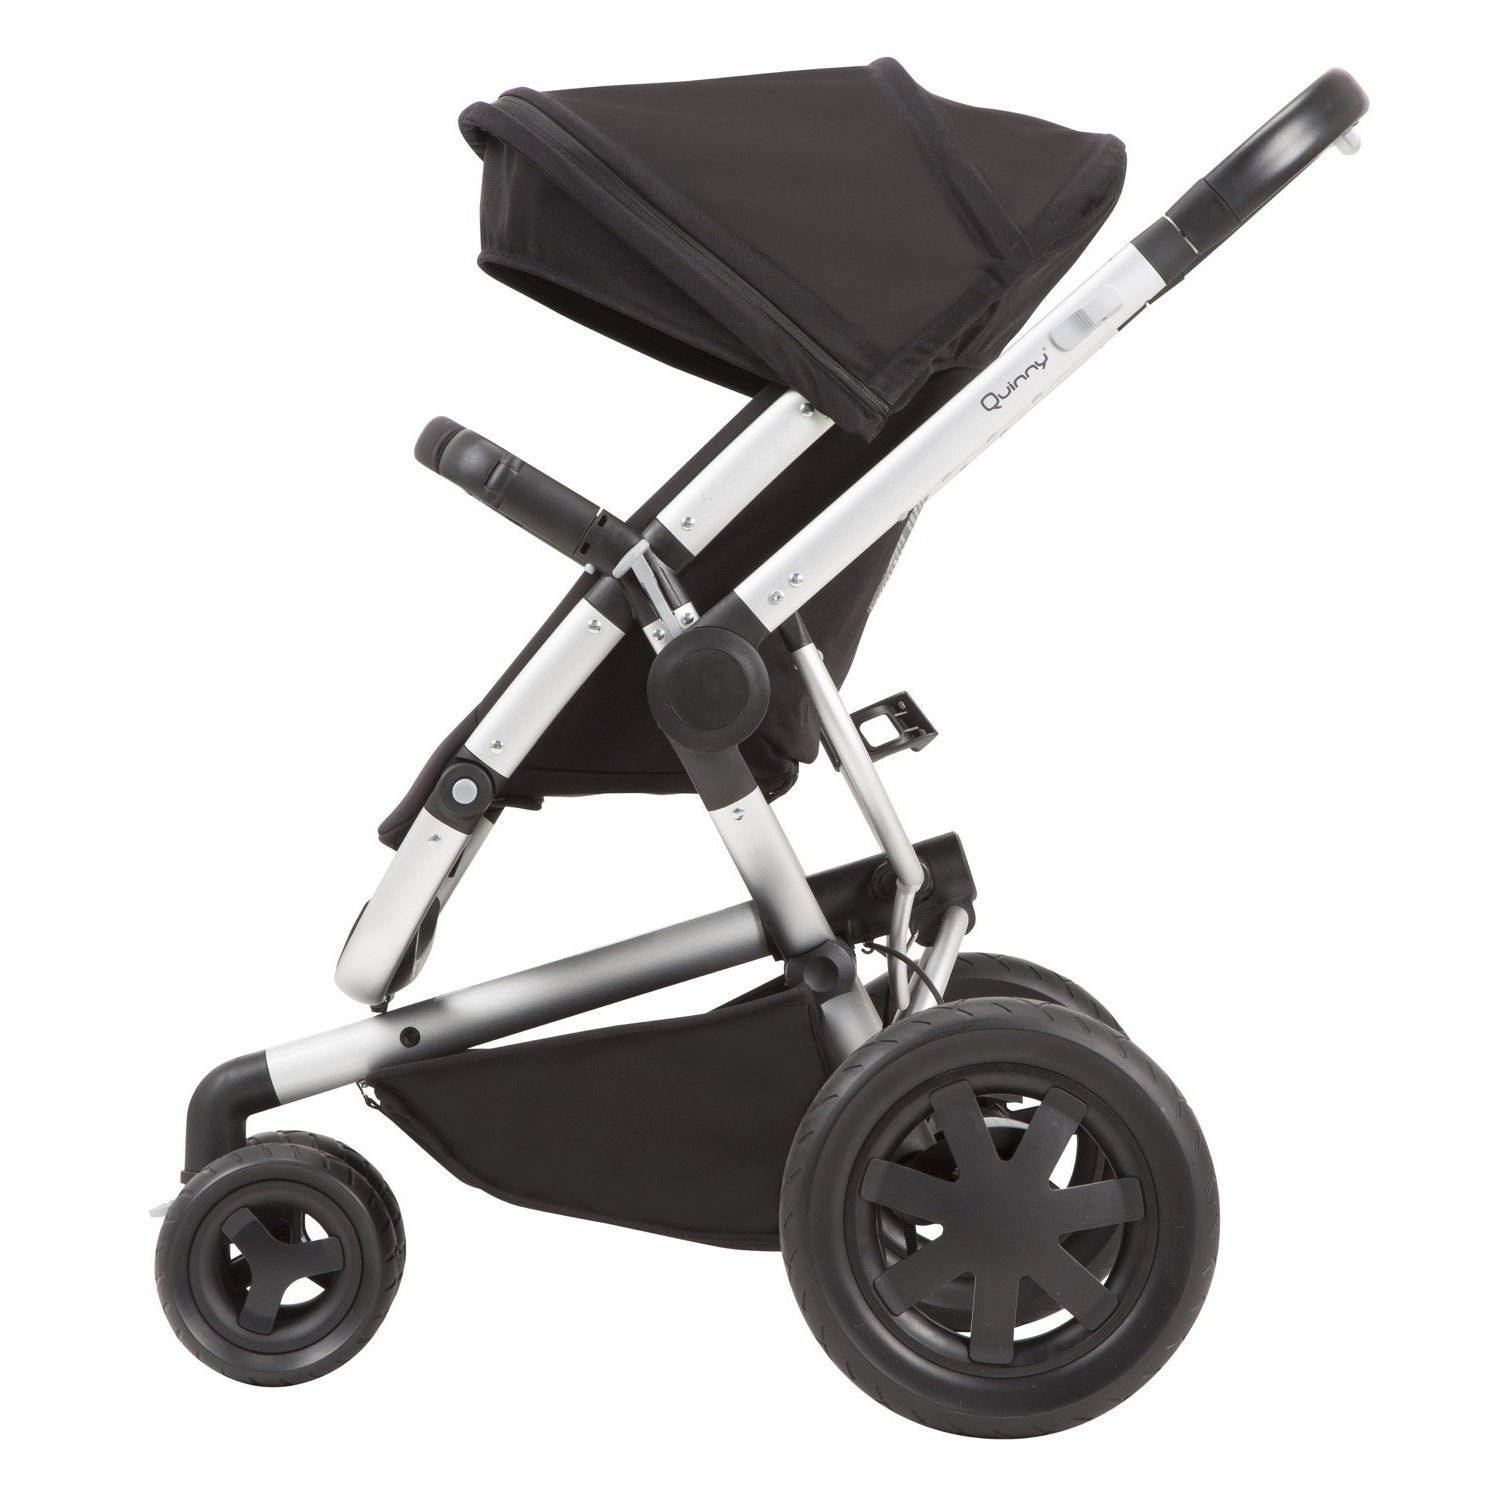 New patented & unique stroller! Now available on our store